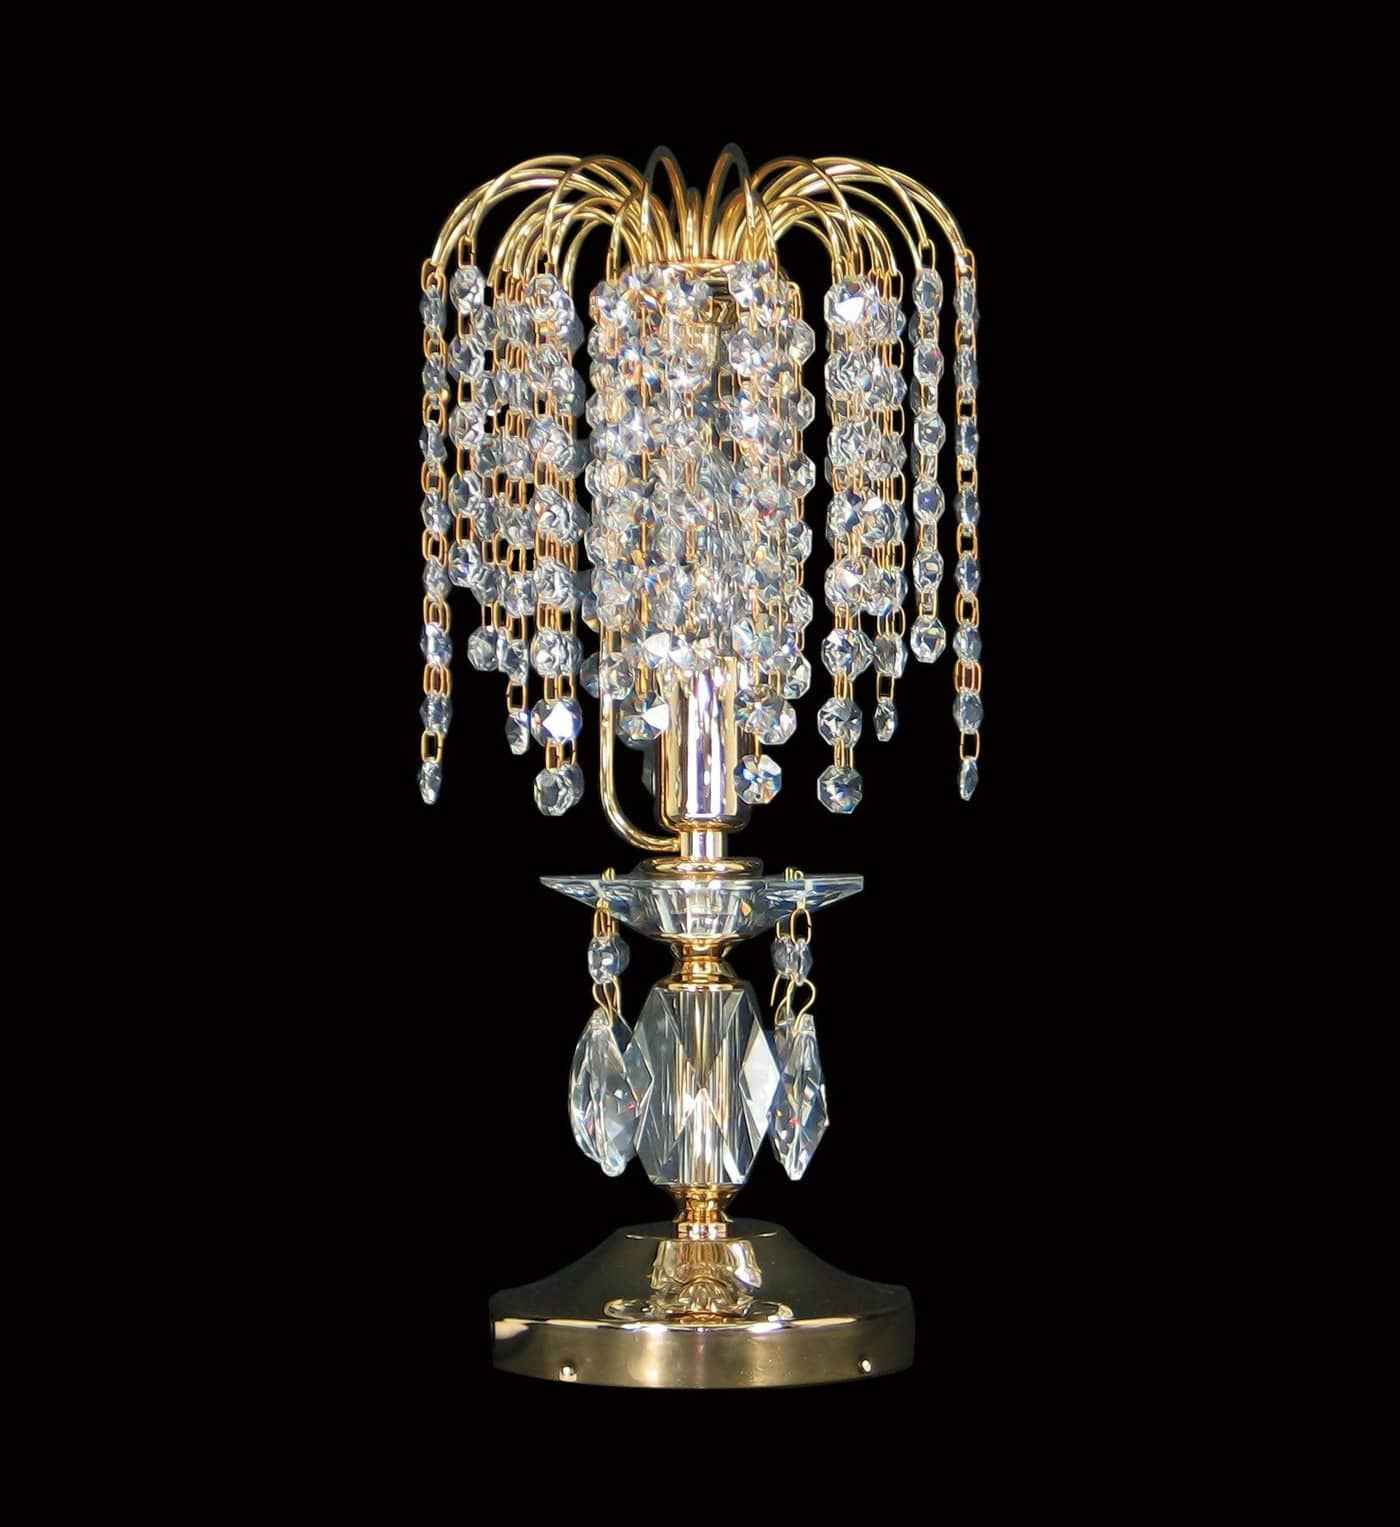 Asfour crystal light by chic chandeliers 8004 7 asfour crystal table lamp aloadofball Images